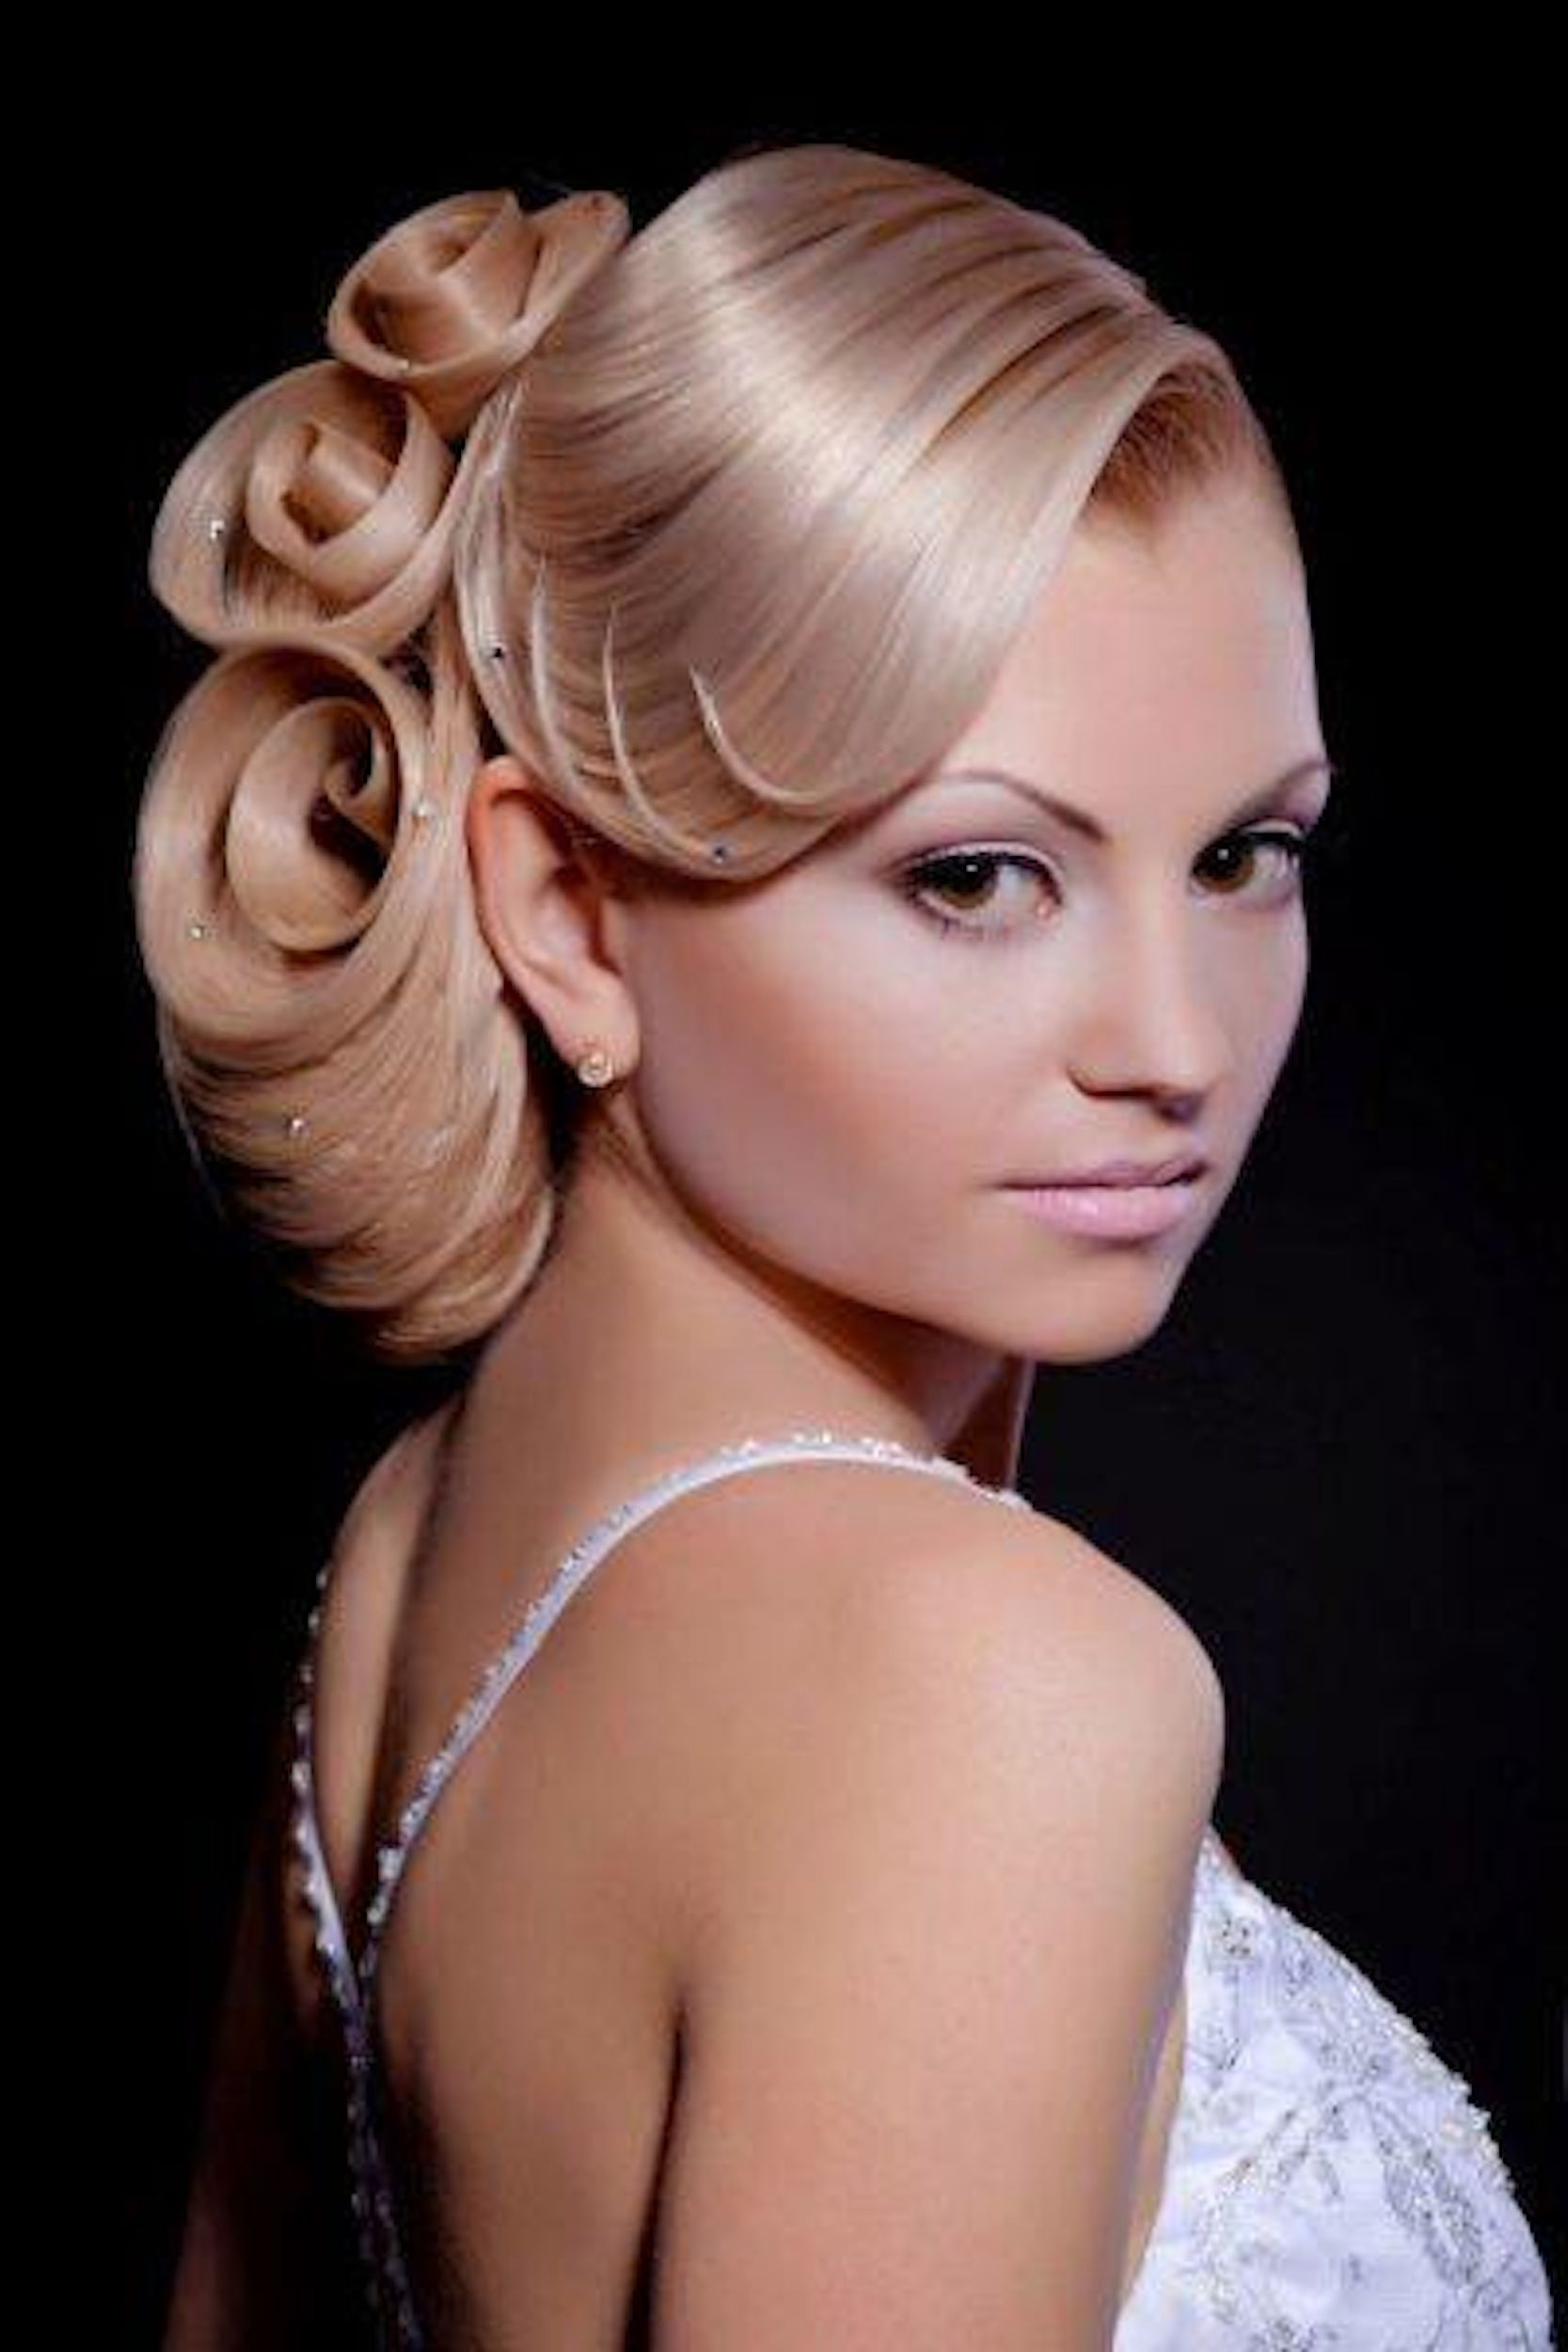 Triple hair roses by Georgy Kot of Russia | Rapunzel Has Nothing on Me | Pinterest | Russia ...